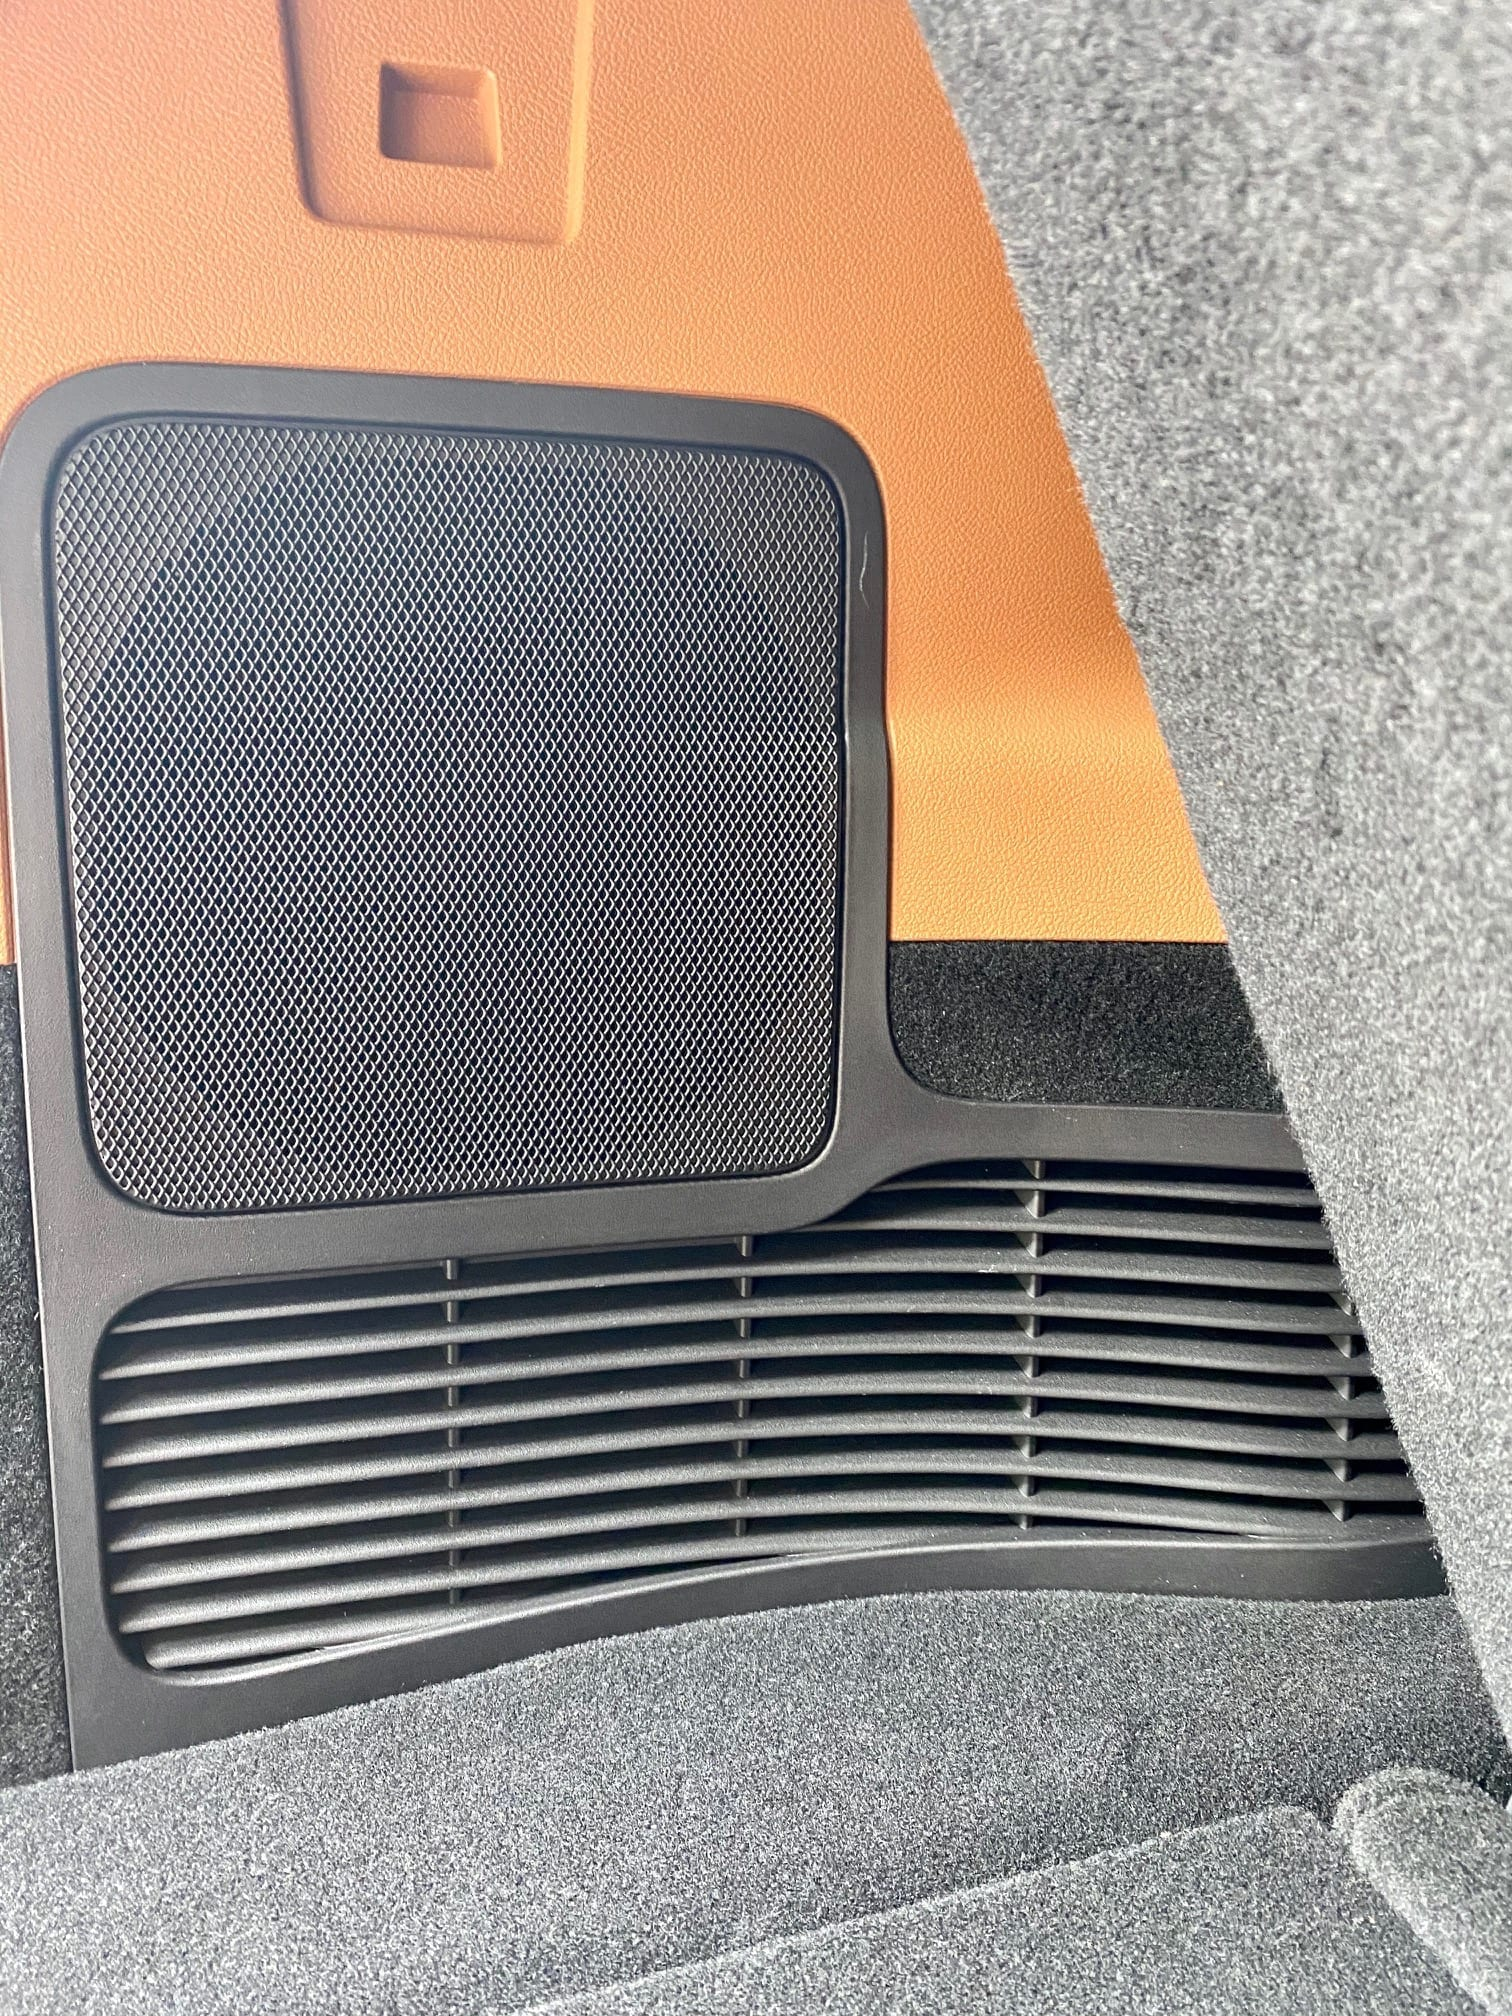 Revel Trunk Speakers and Sound System in Lincoln Aviator image